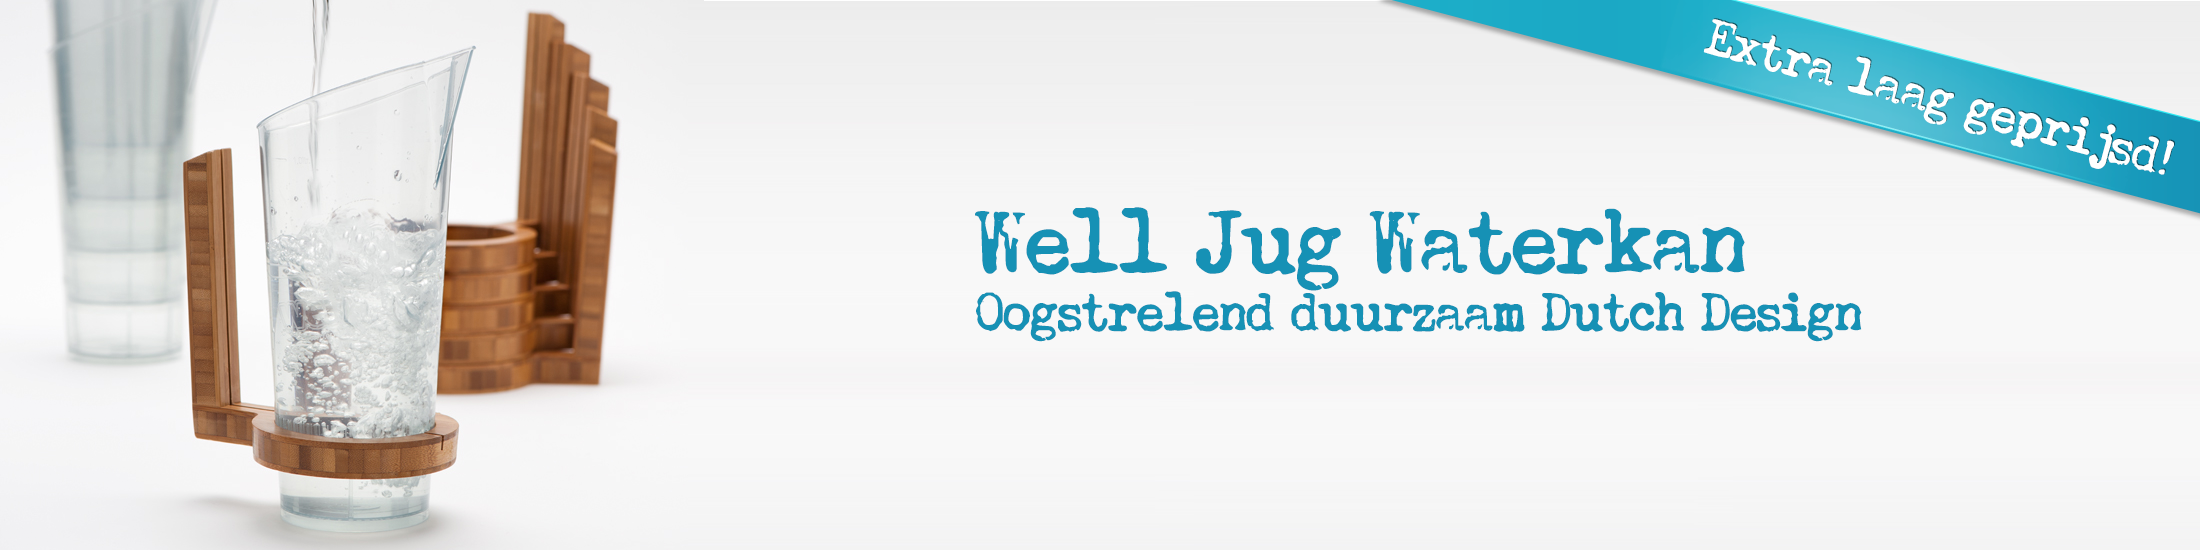 WellJug_website2